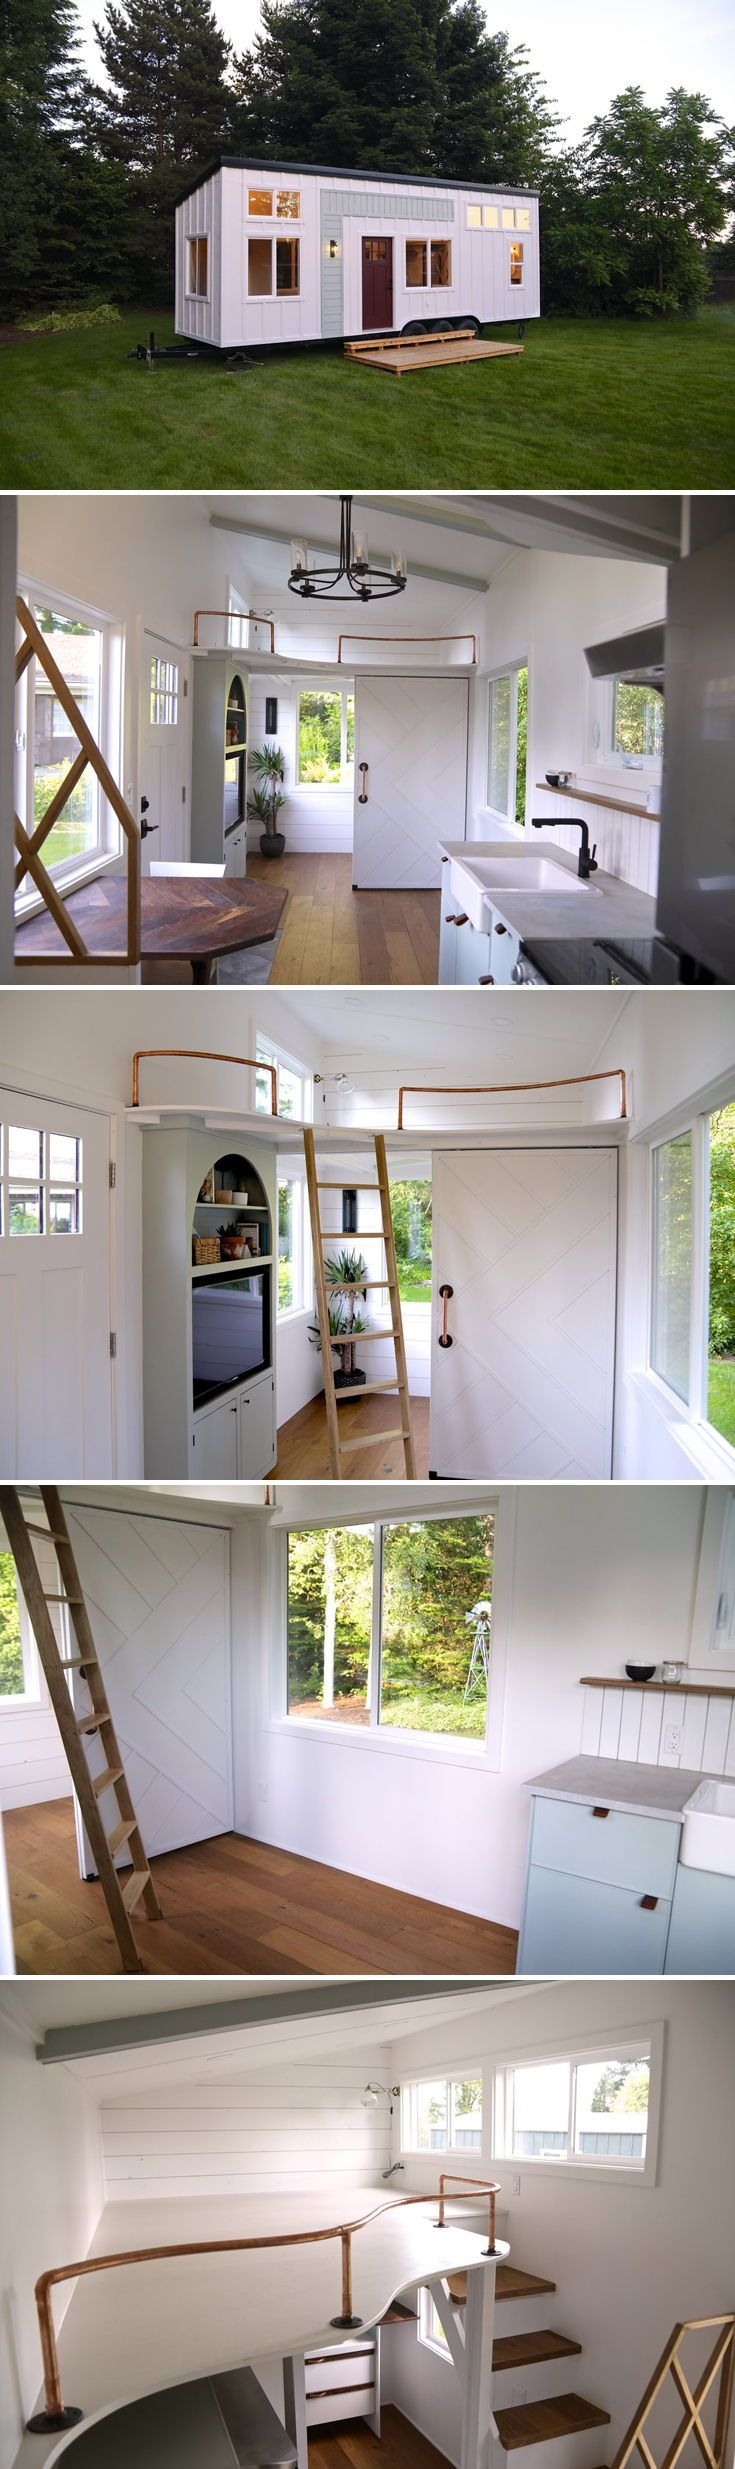 Laguna by Handcrafted Movement #tinyhouses